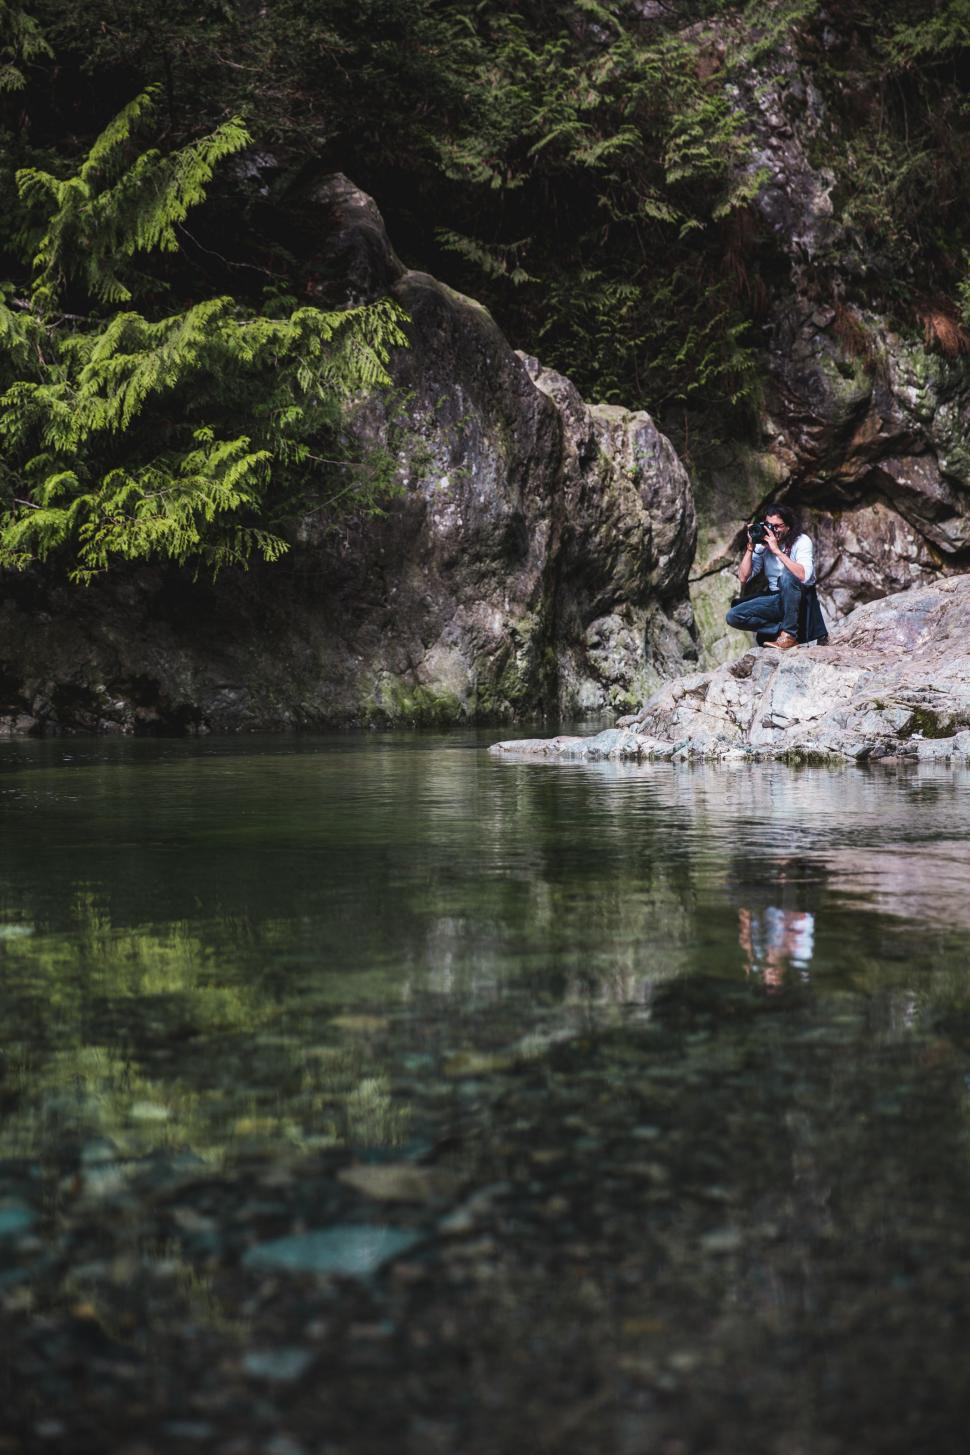 Download Free Stock HD Photo of A nature photographer near a clear water stream Online